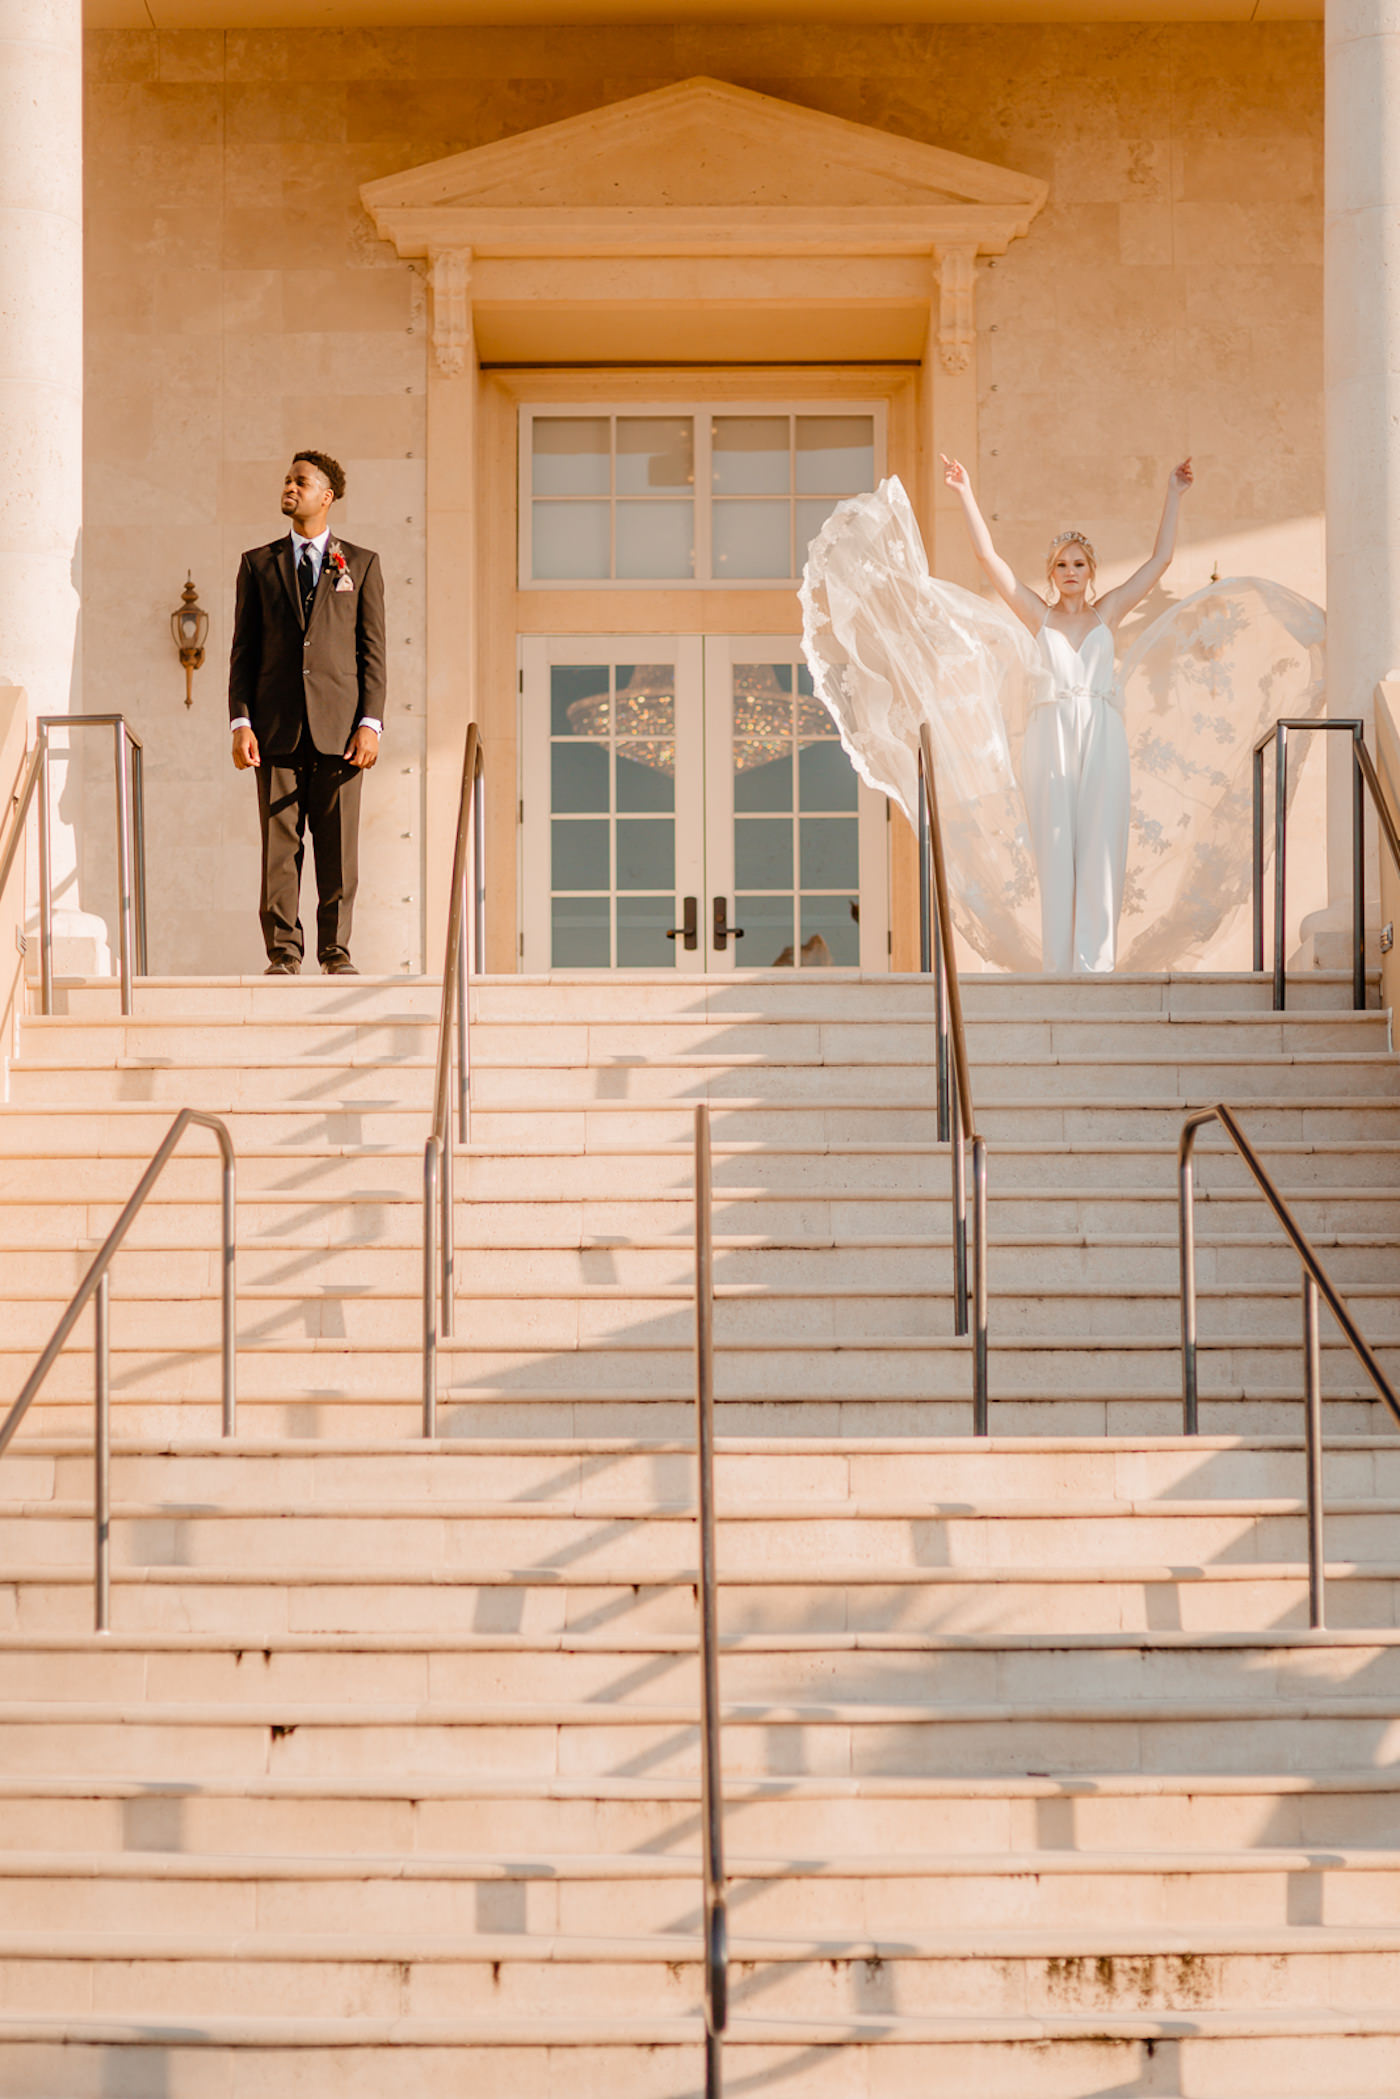 Bride and Groom Outdoor Wedding Portrait on Grand Staircase | Embroidered Floral Lace V Neck Bridal Gown and Groom in Classic Black Tux